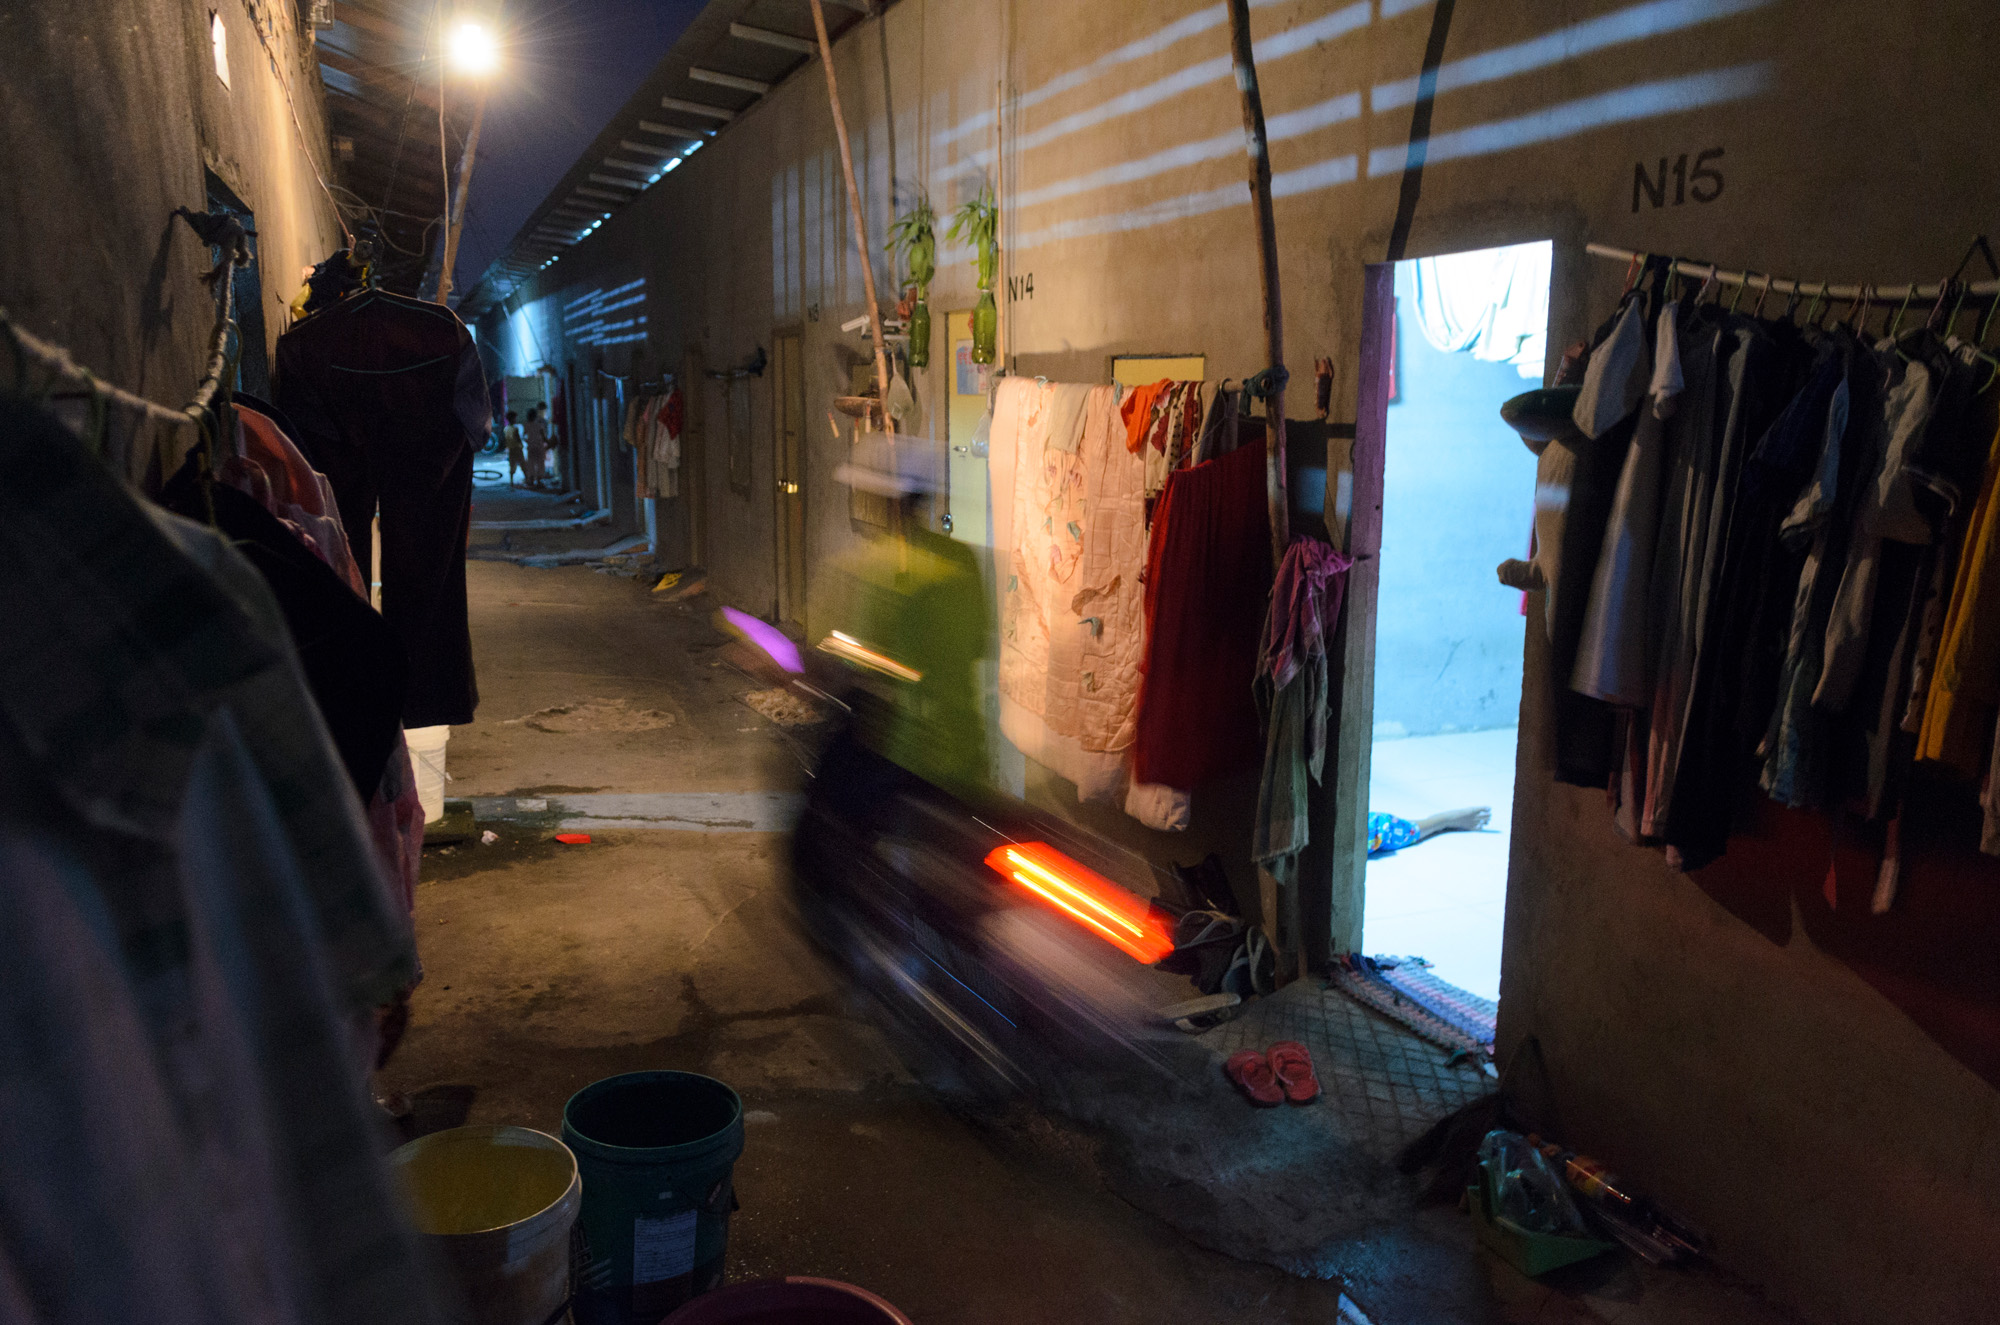 A man drives a motorcycle through the narrow alleyways connecting apartments in a low-rent housing development that caters to garment factory workers on the edge of Phnom Penh, Cambodia.